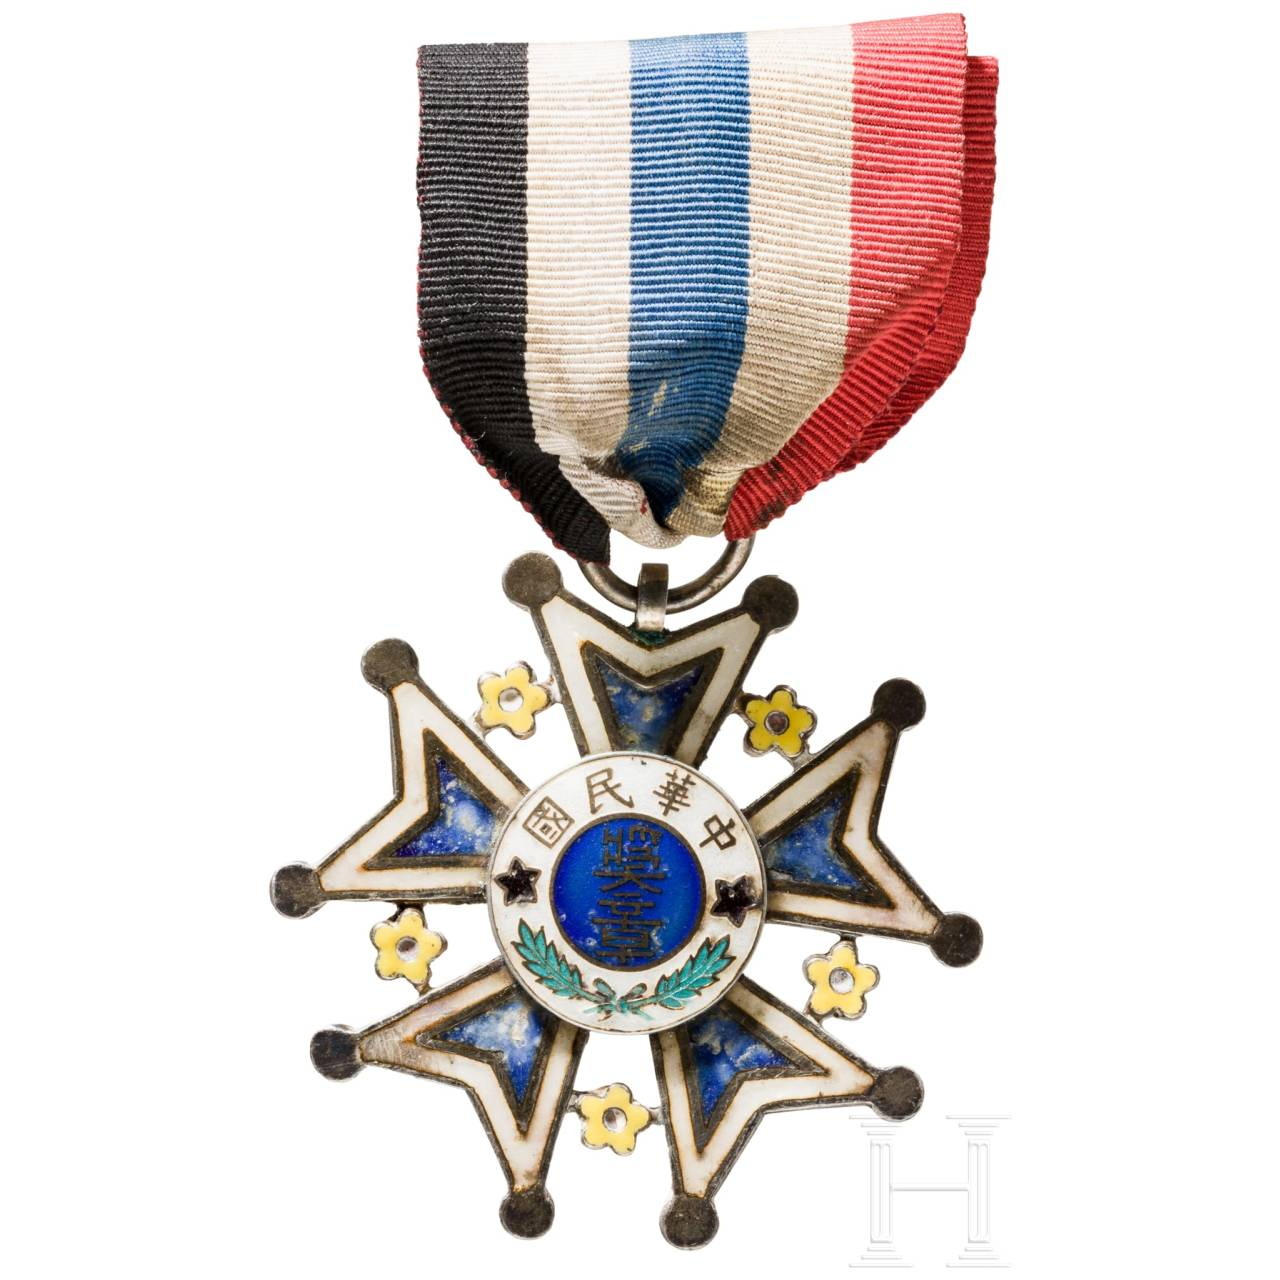 A Medal of Merit 2nd class of the Republic, Chinese province Hebei, from 1912 onwards